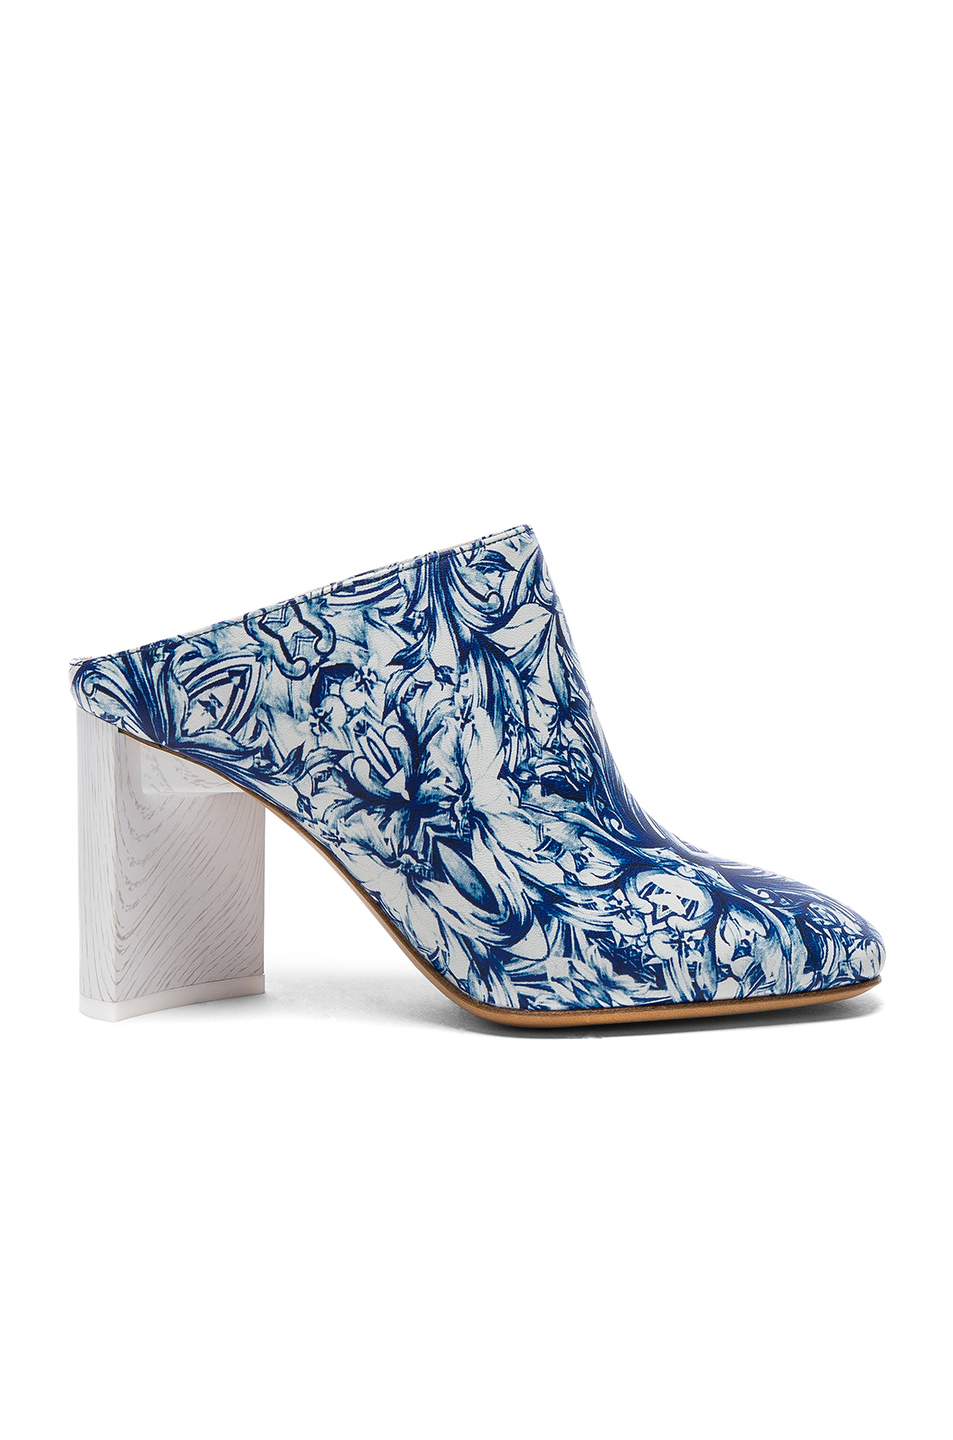 Maison Margiela Printed Leather Mules in Blue,Abstract,Floral